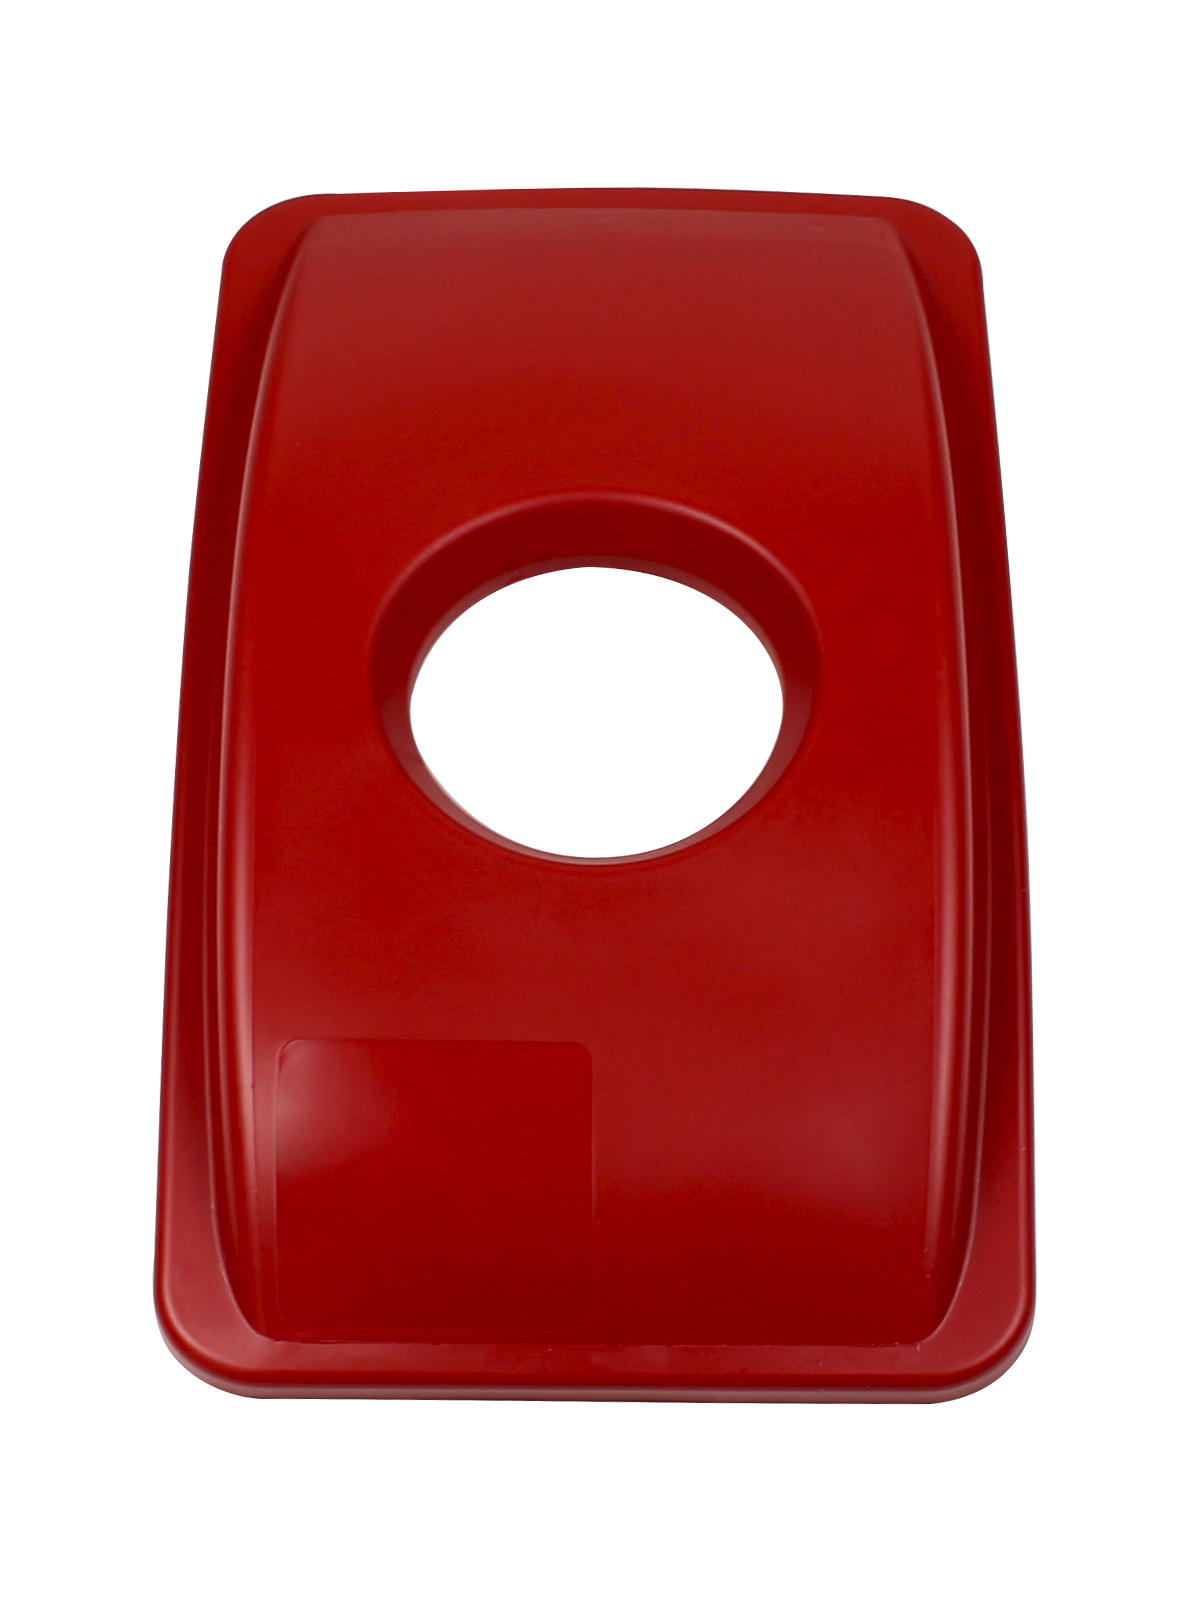 WASTE WATCHER - Lid - Circle - Red